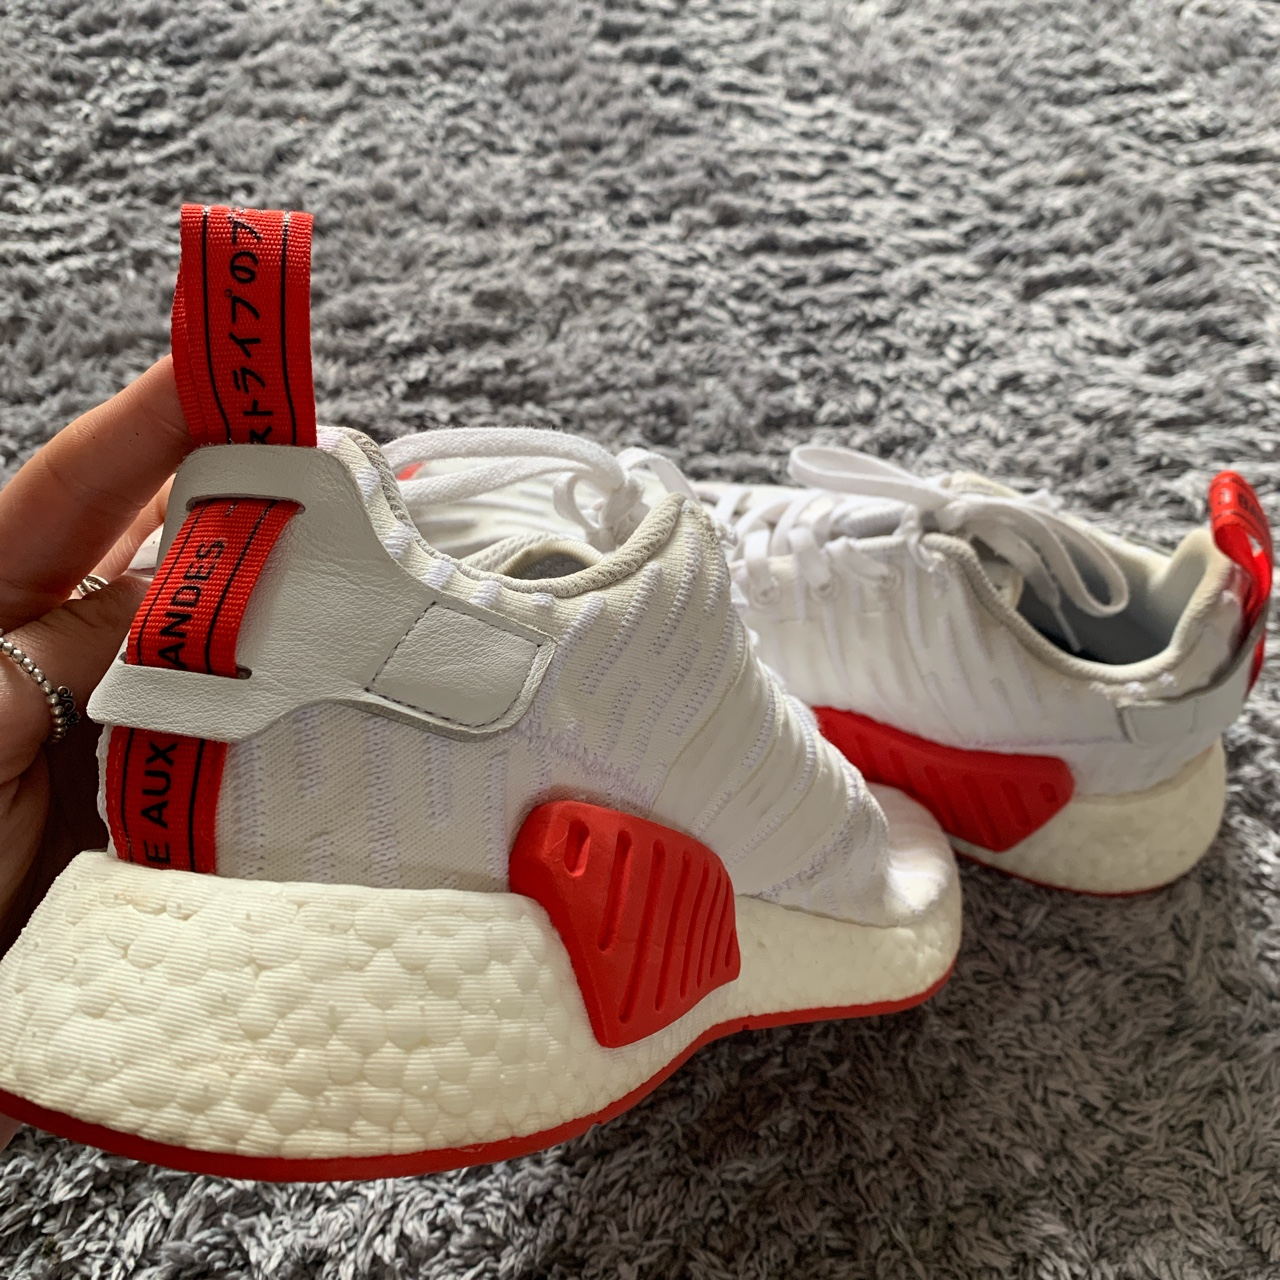 Uk Men S Adidas Nmd R2 White Core Red Two Toned Depop